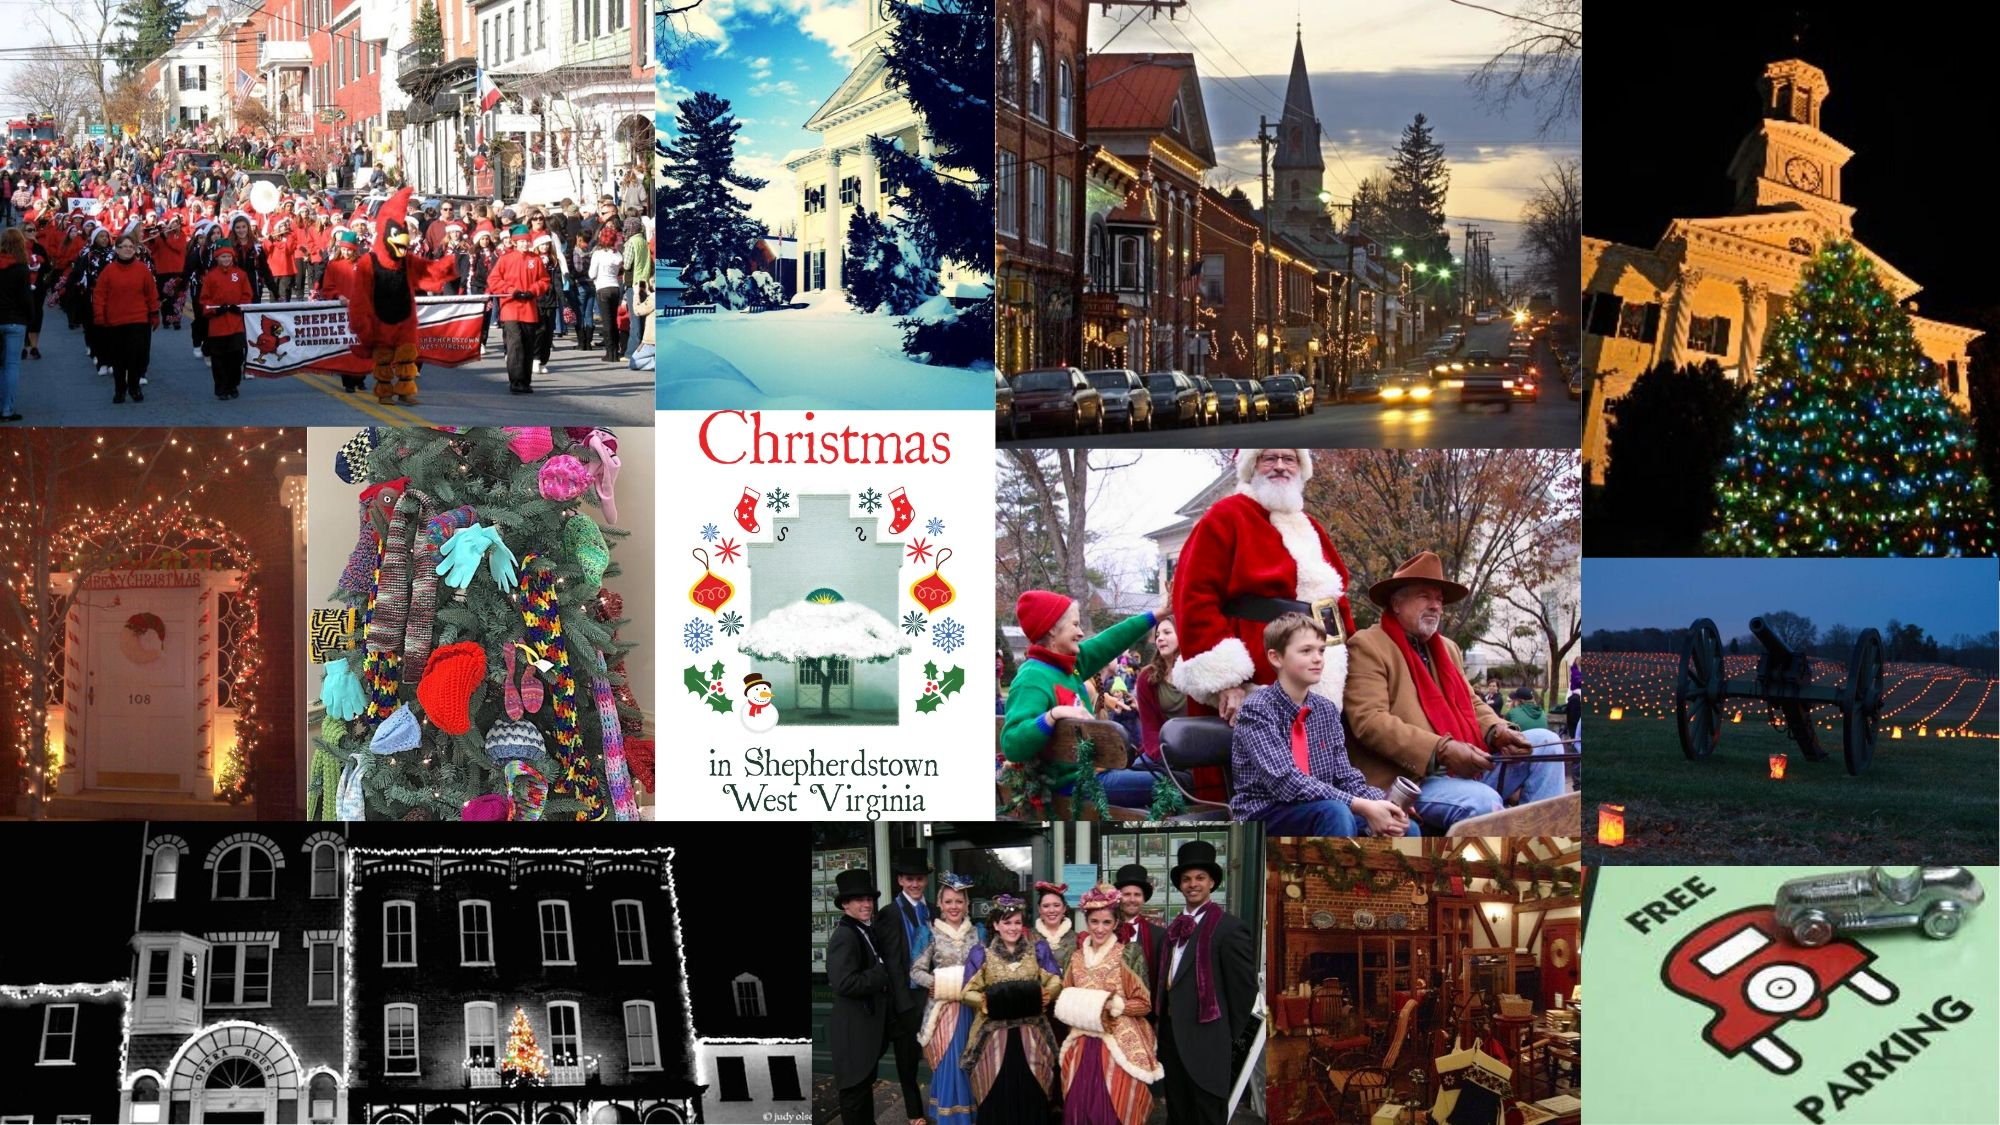 Visit Shepherdstown for the Holidays